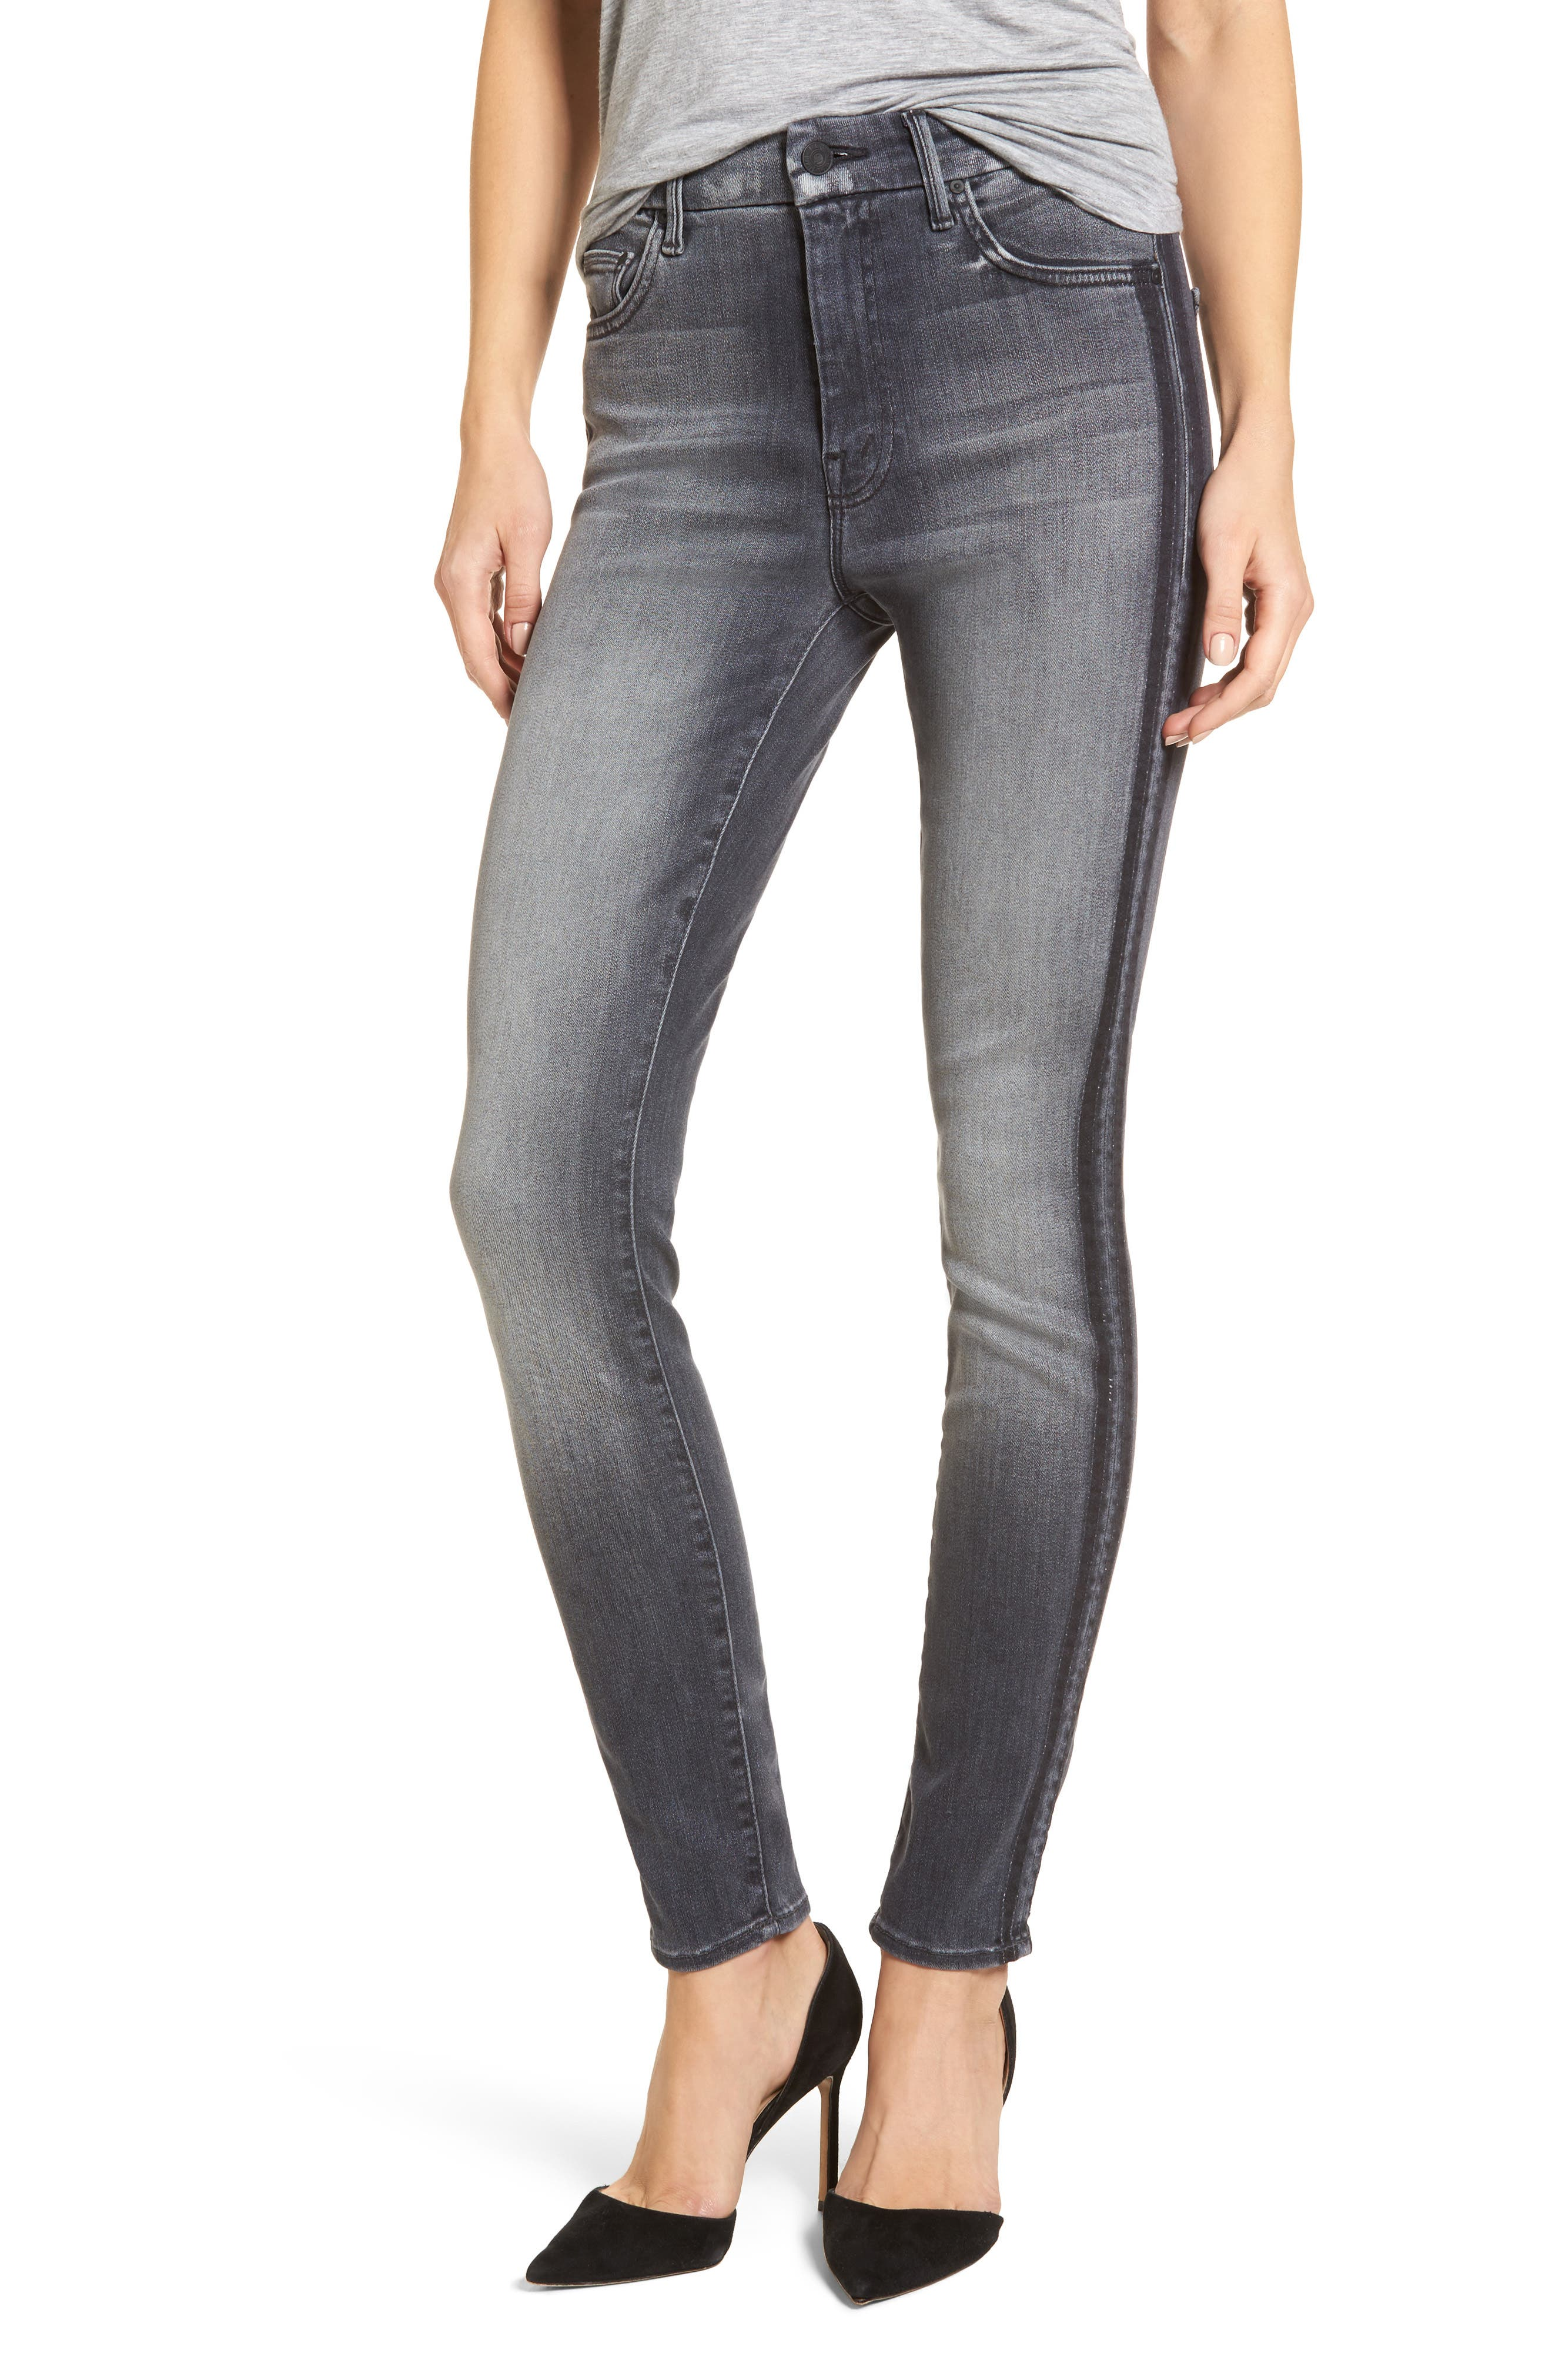 The Looker High Waist Skinny Jeans,                         Main,                         color, Miss Moody Two Shoes Racer